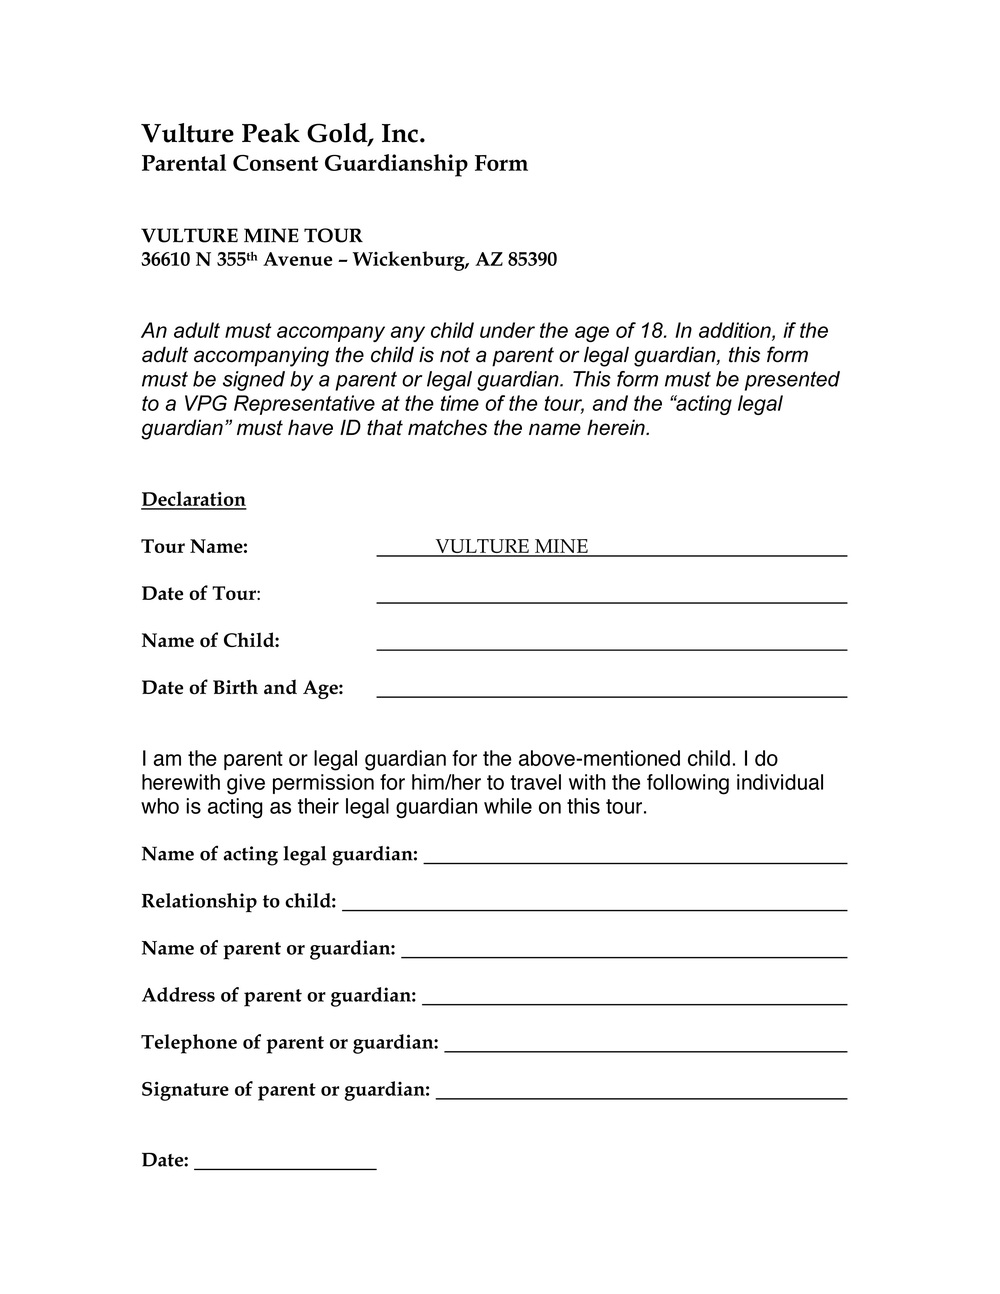 Parental consent form vulture mine thecheapjerseys Gallery